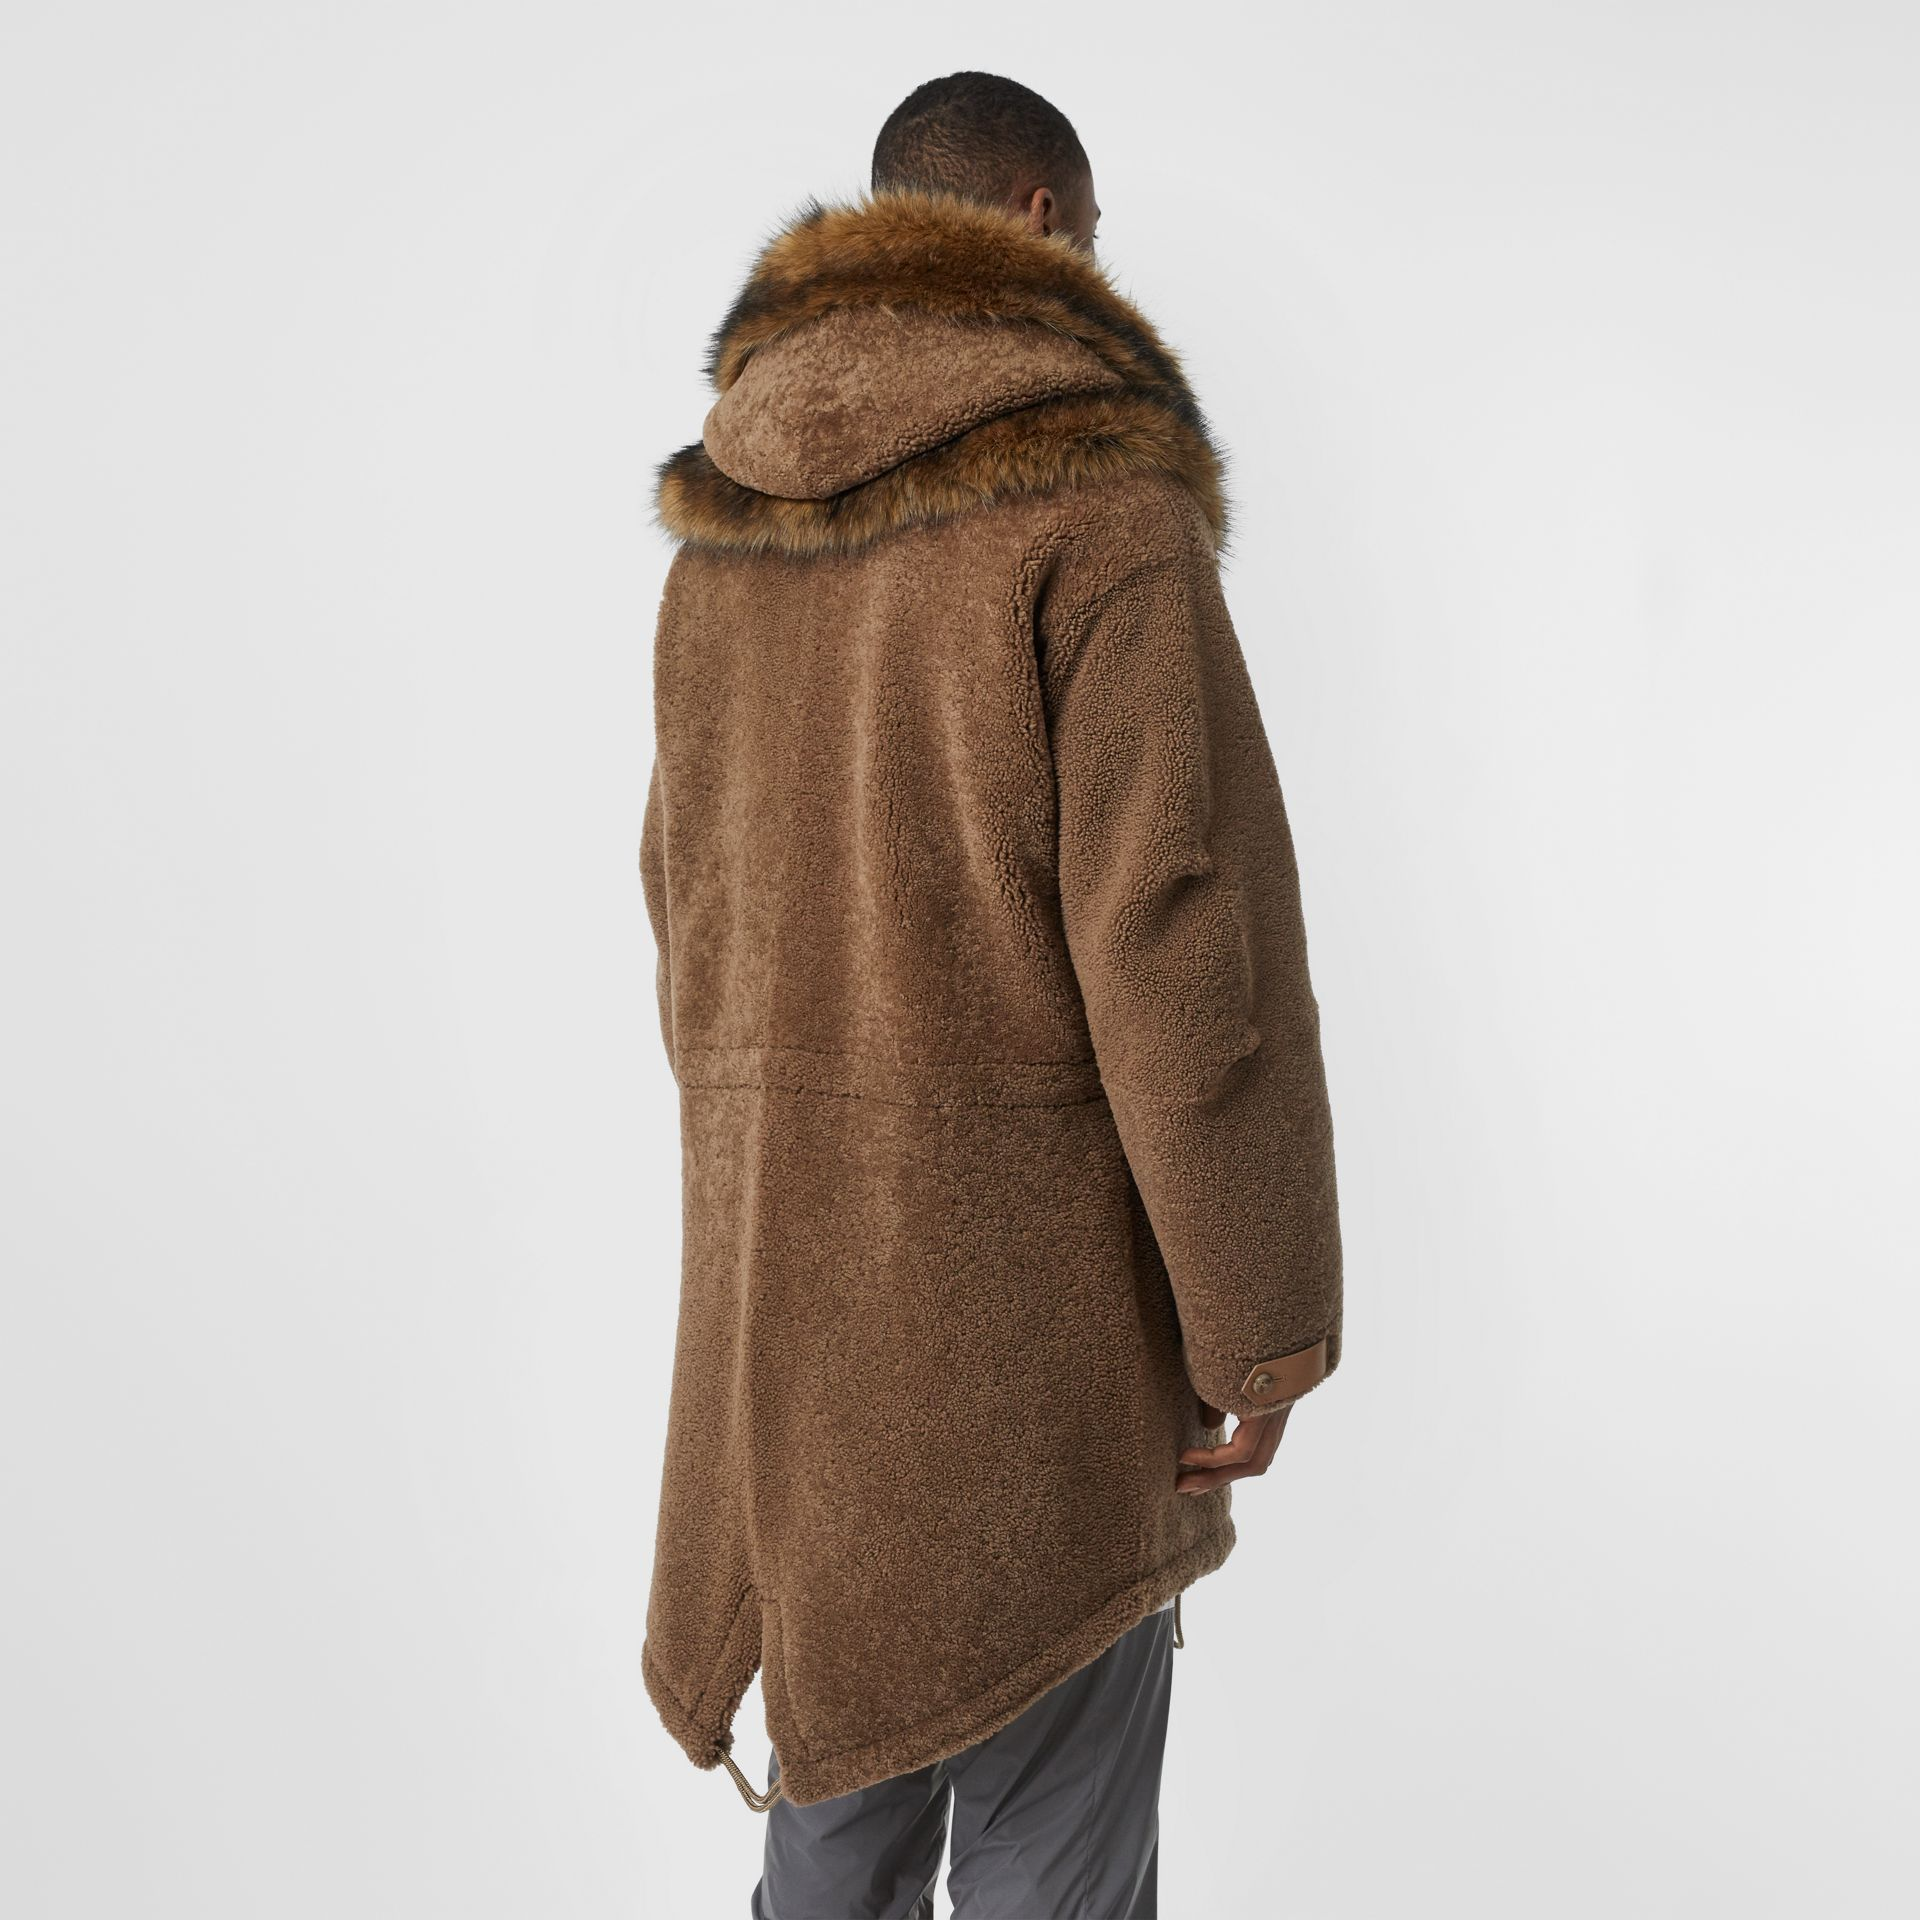 Shearling Parka with Detachable Hood and Jacket in Pale Coffee - Men | Burberry - gallery image 1